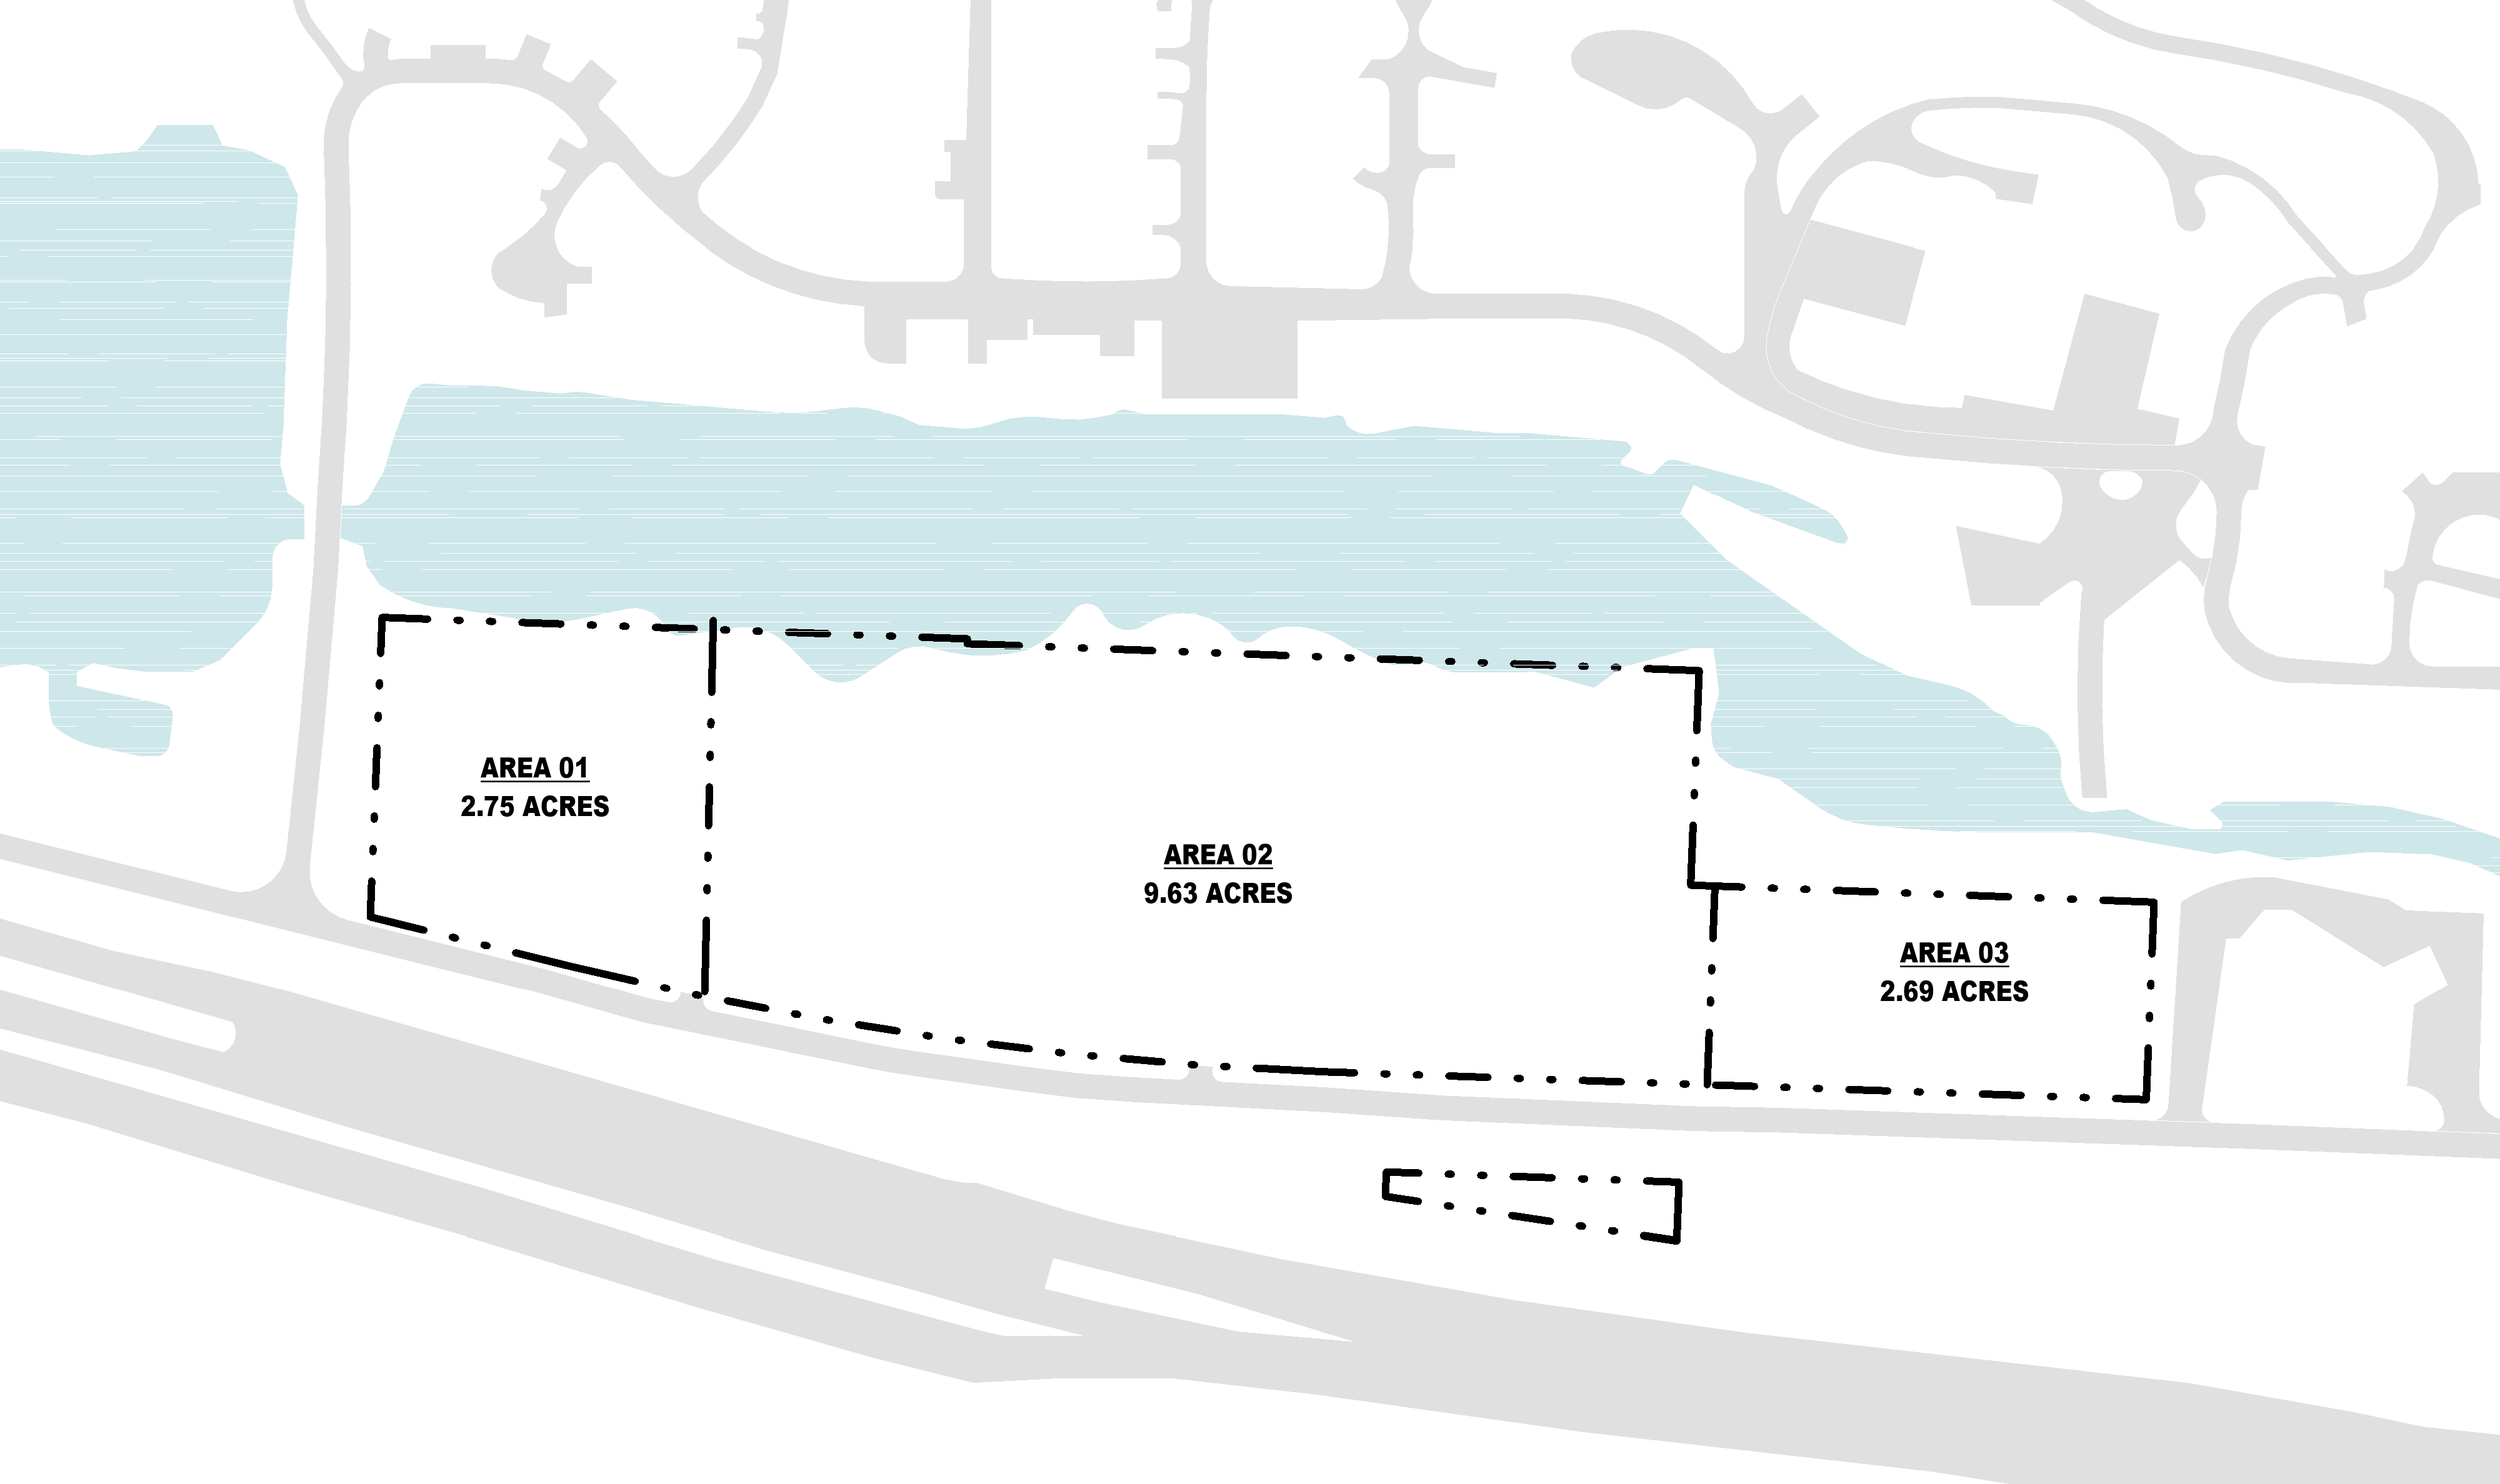 Site area diagram.png